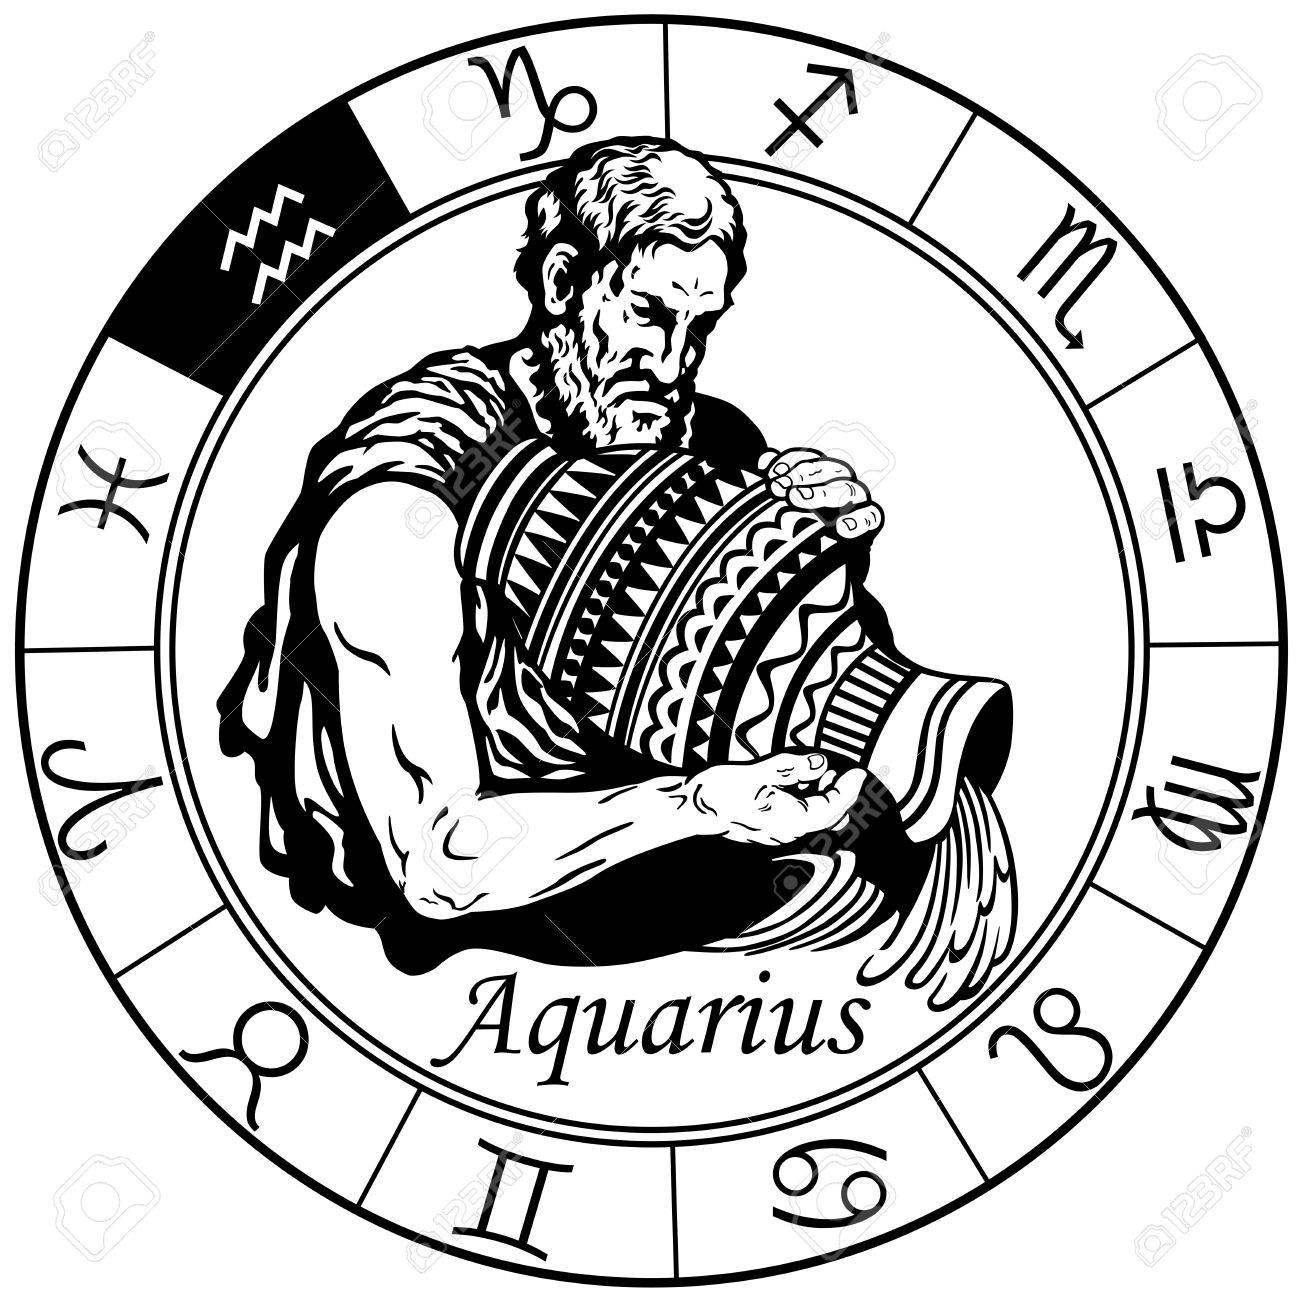 ce7f30a87 aquarius astrological horoscope sign in the zodiac wheel. Black and white  vector illustration Stock Vector